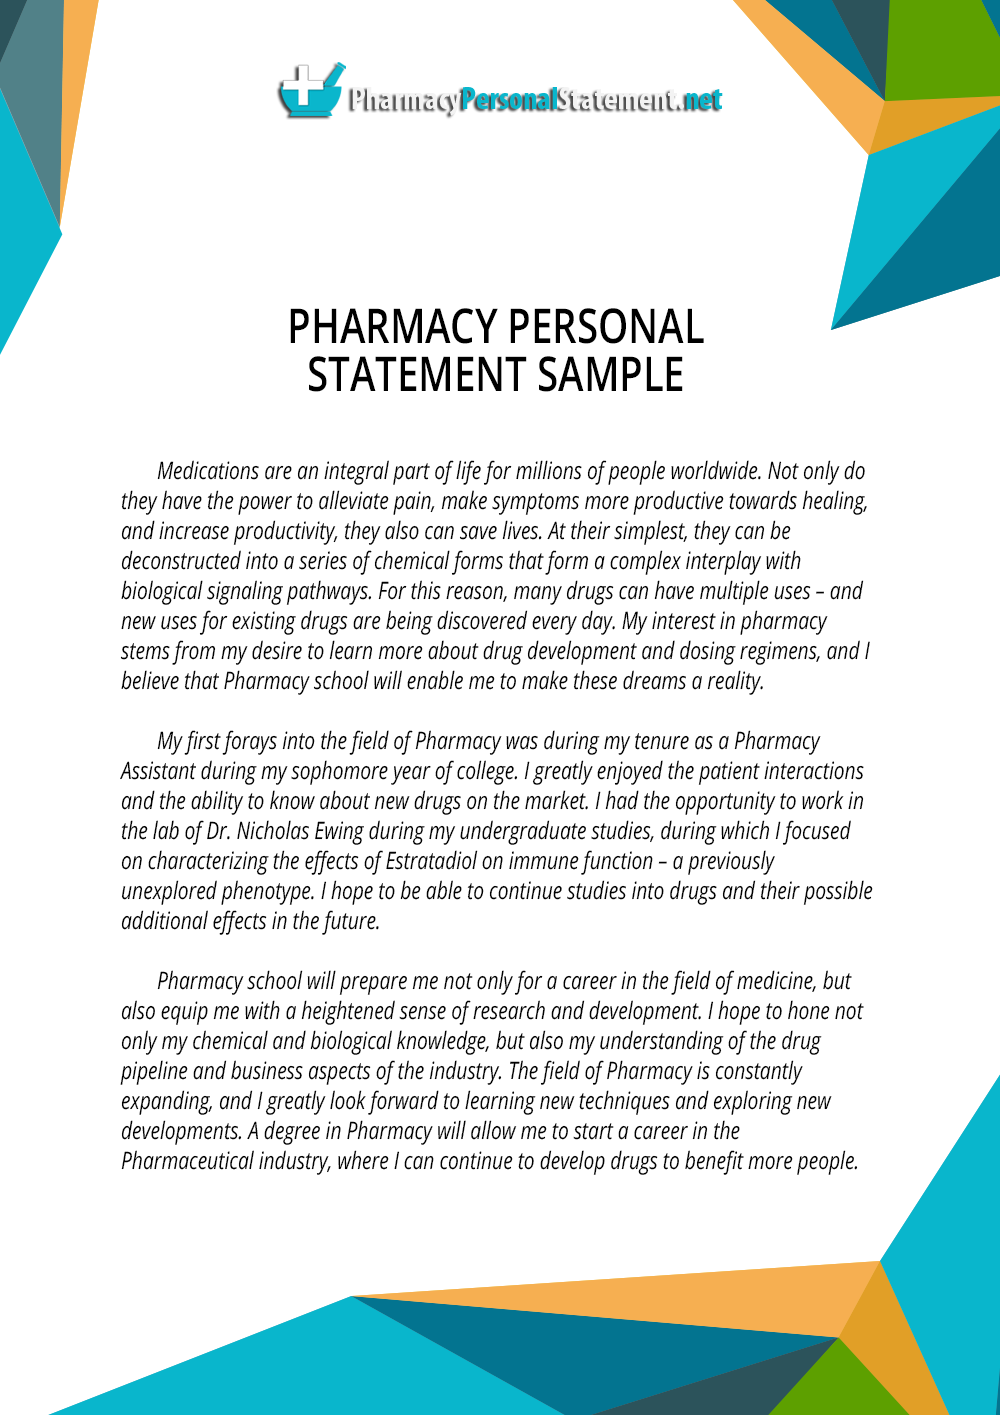 Pharmacy School Personal Statement Editing- EssayEdge